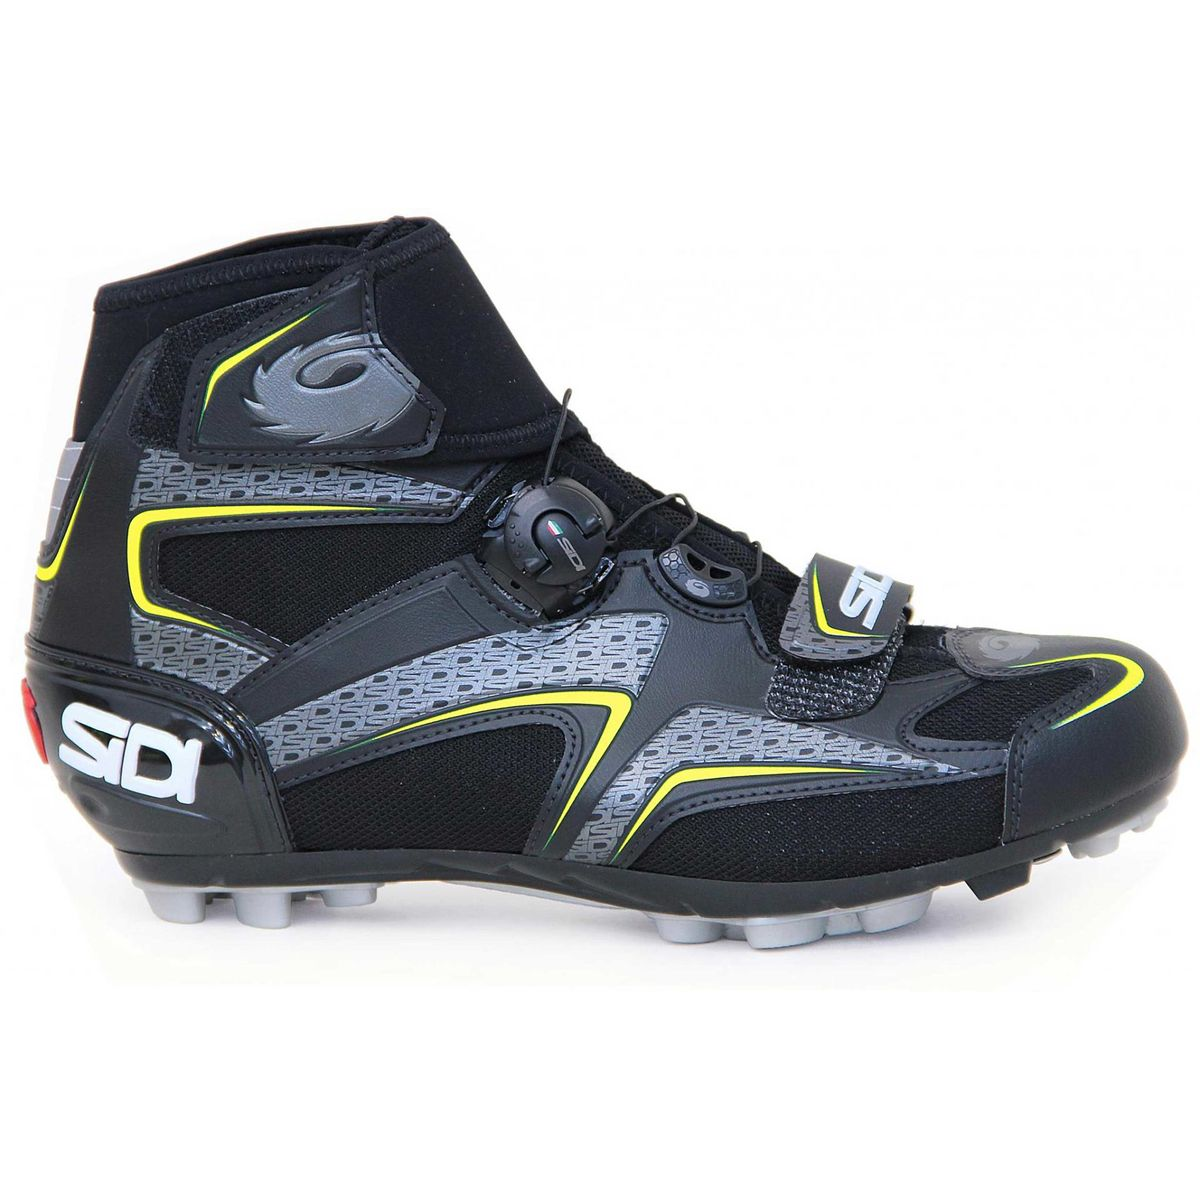 SIDI MTB FROST GORE MTB shoes | Shoes and overlays